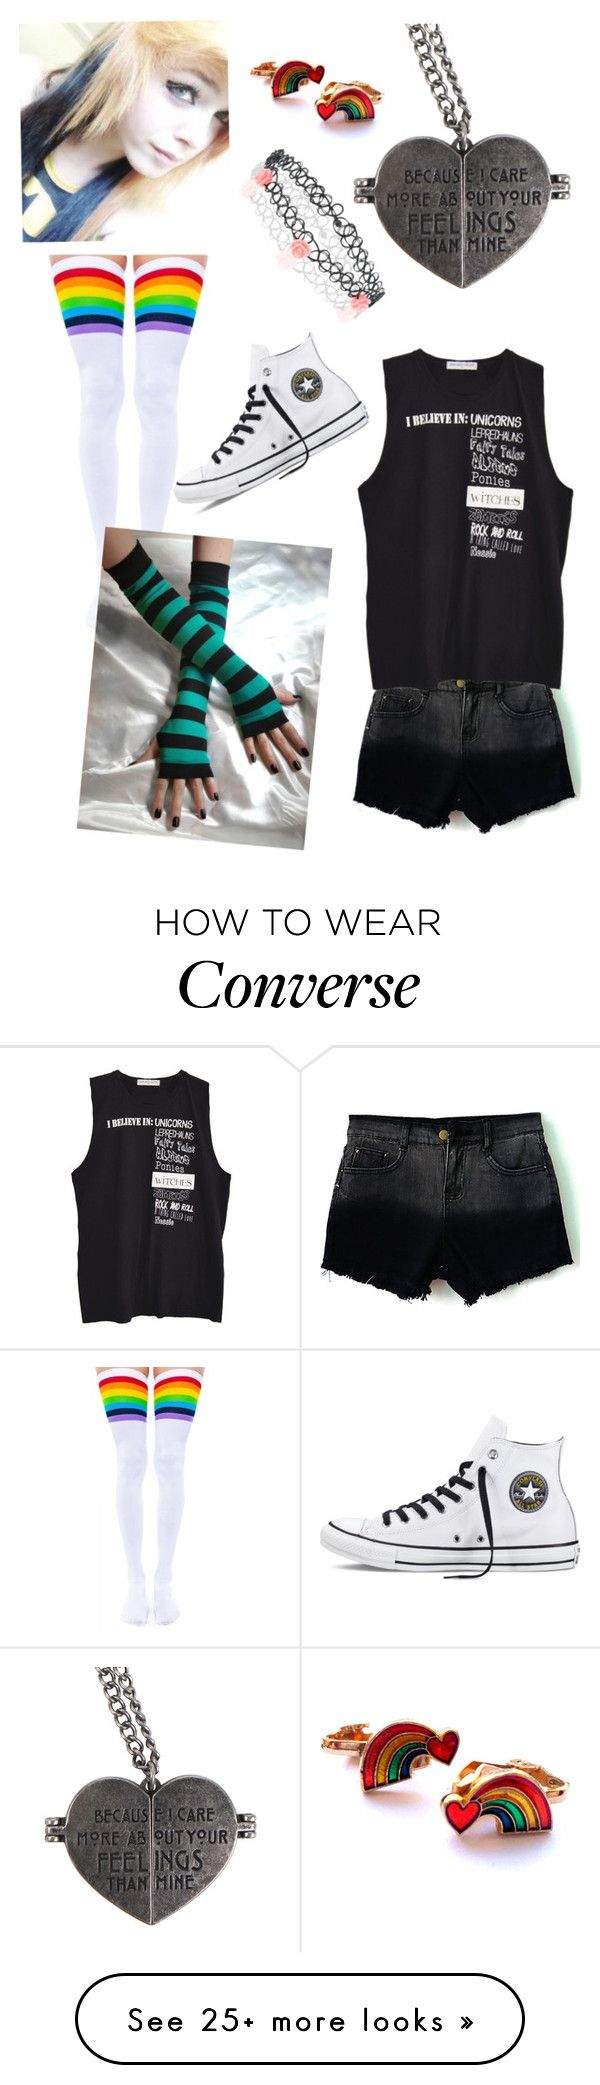 """Untitled #335"" by unicorn1233 on Polyvore featuring Leg Avenue, Converse, Monsoon, women's clothing, women, female, woman, misses and juniors"